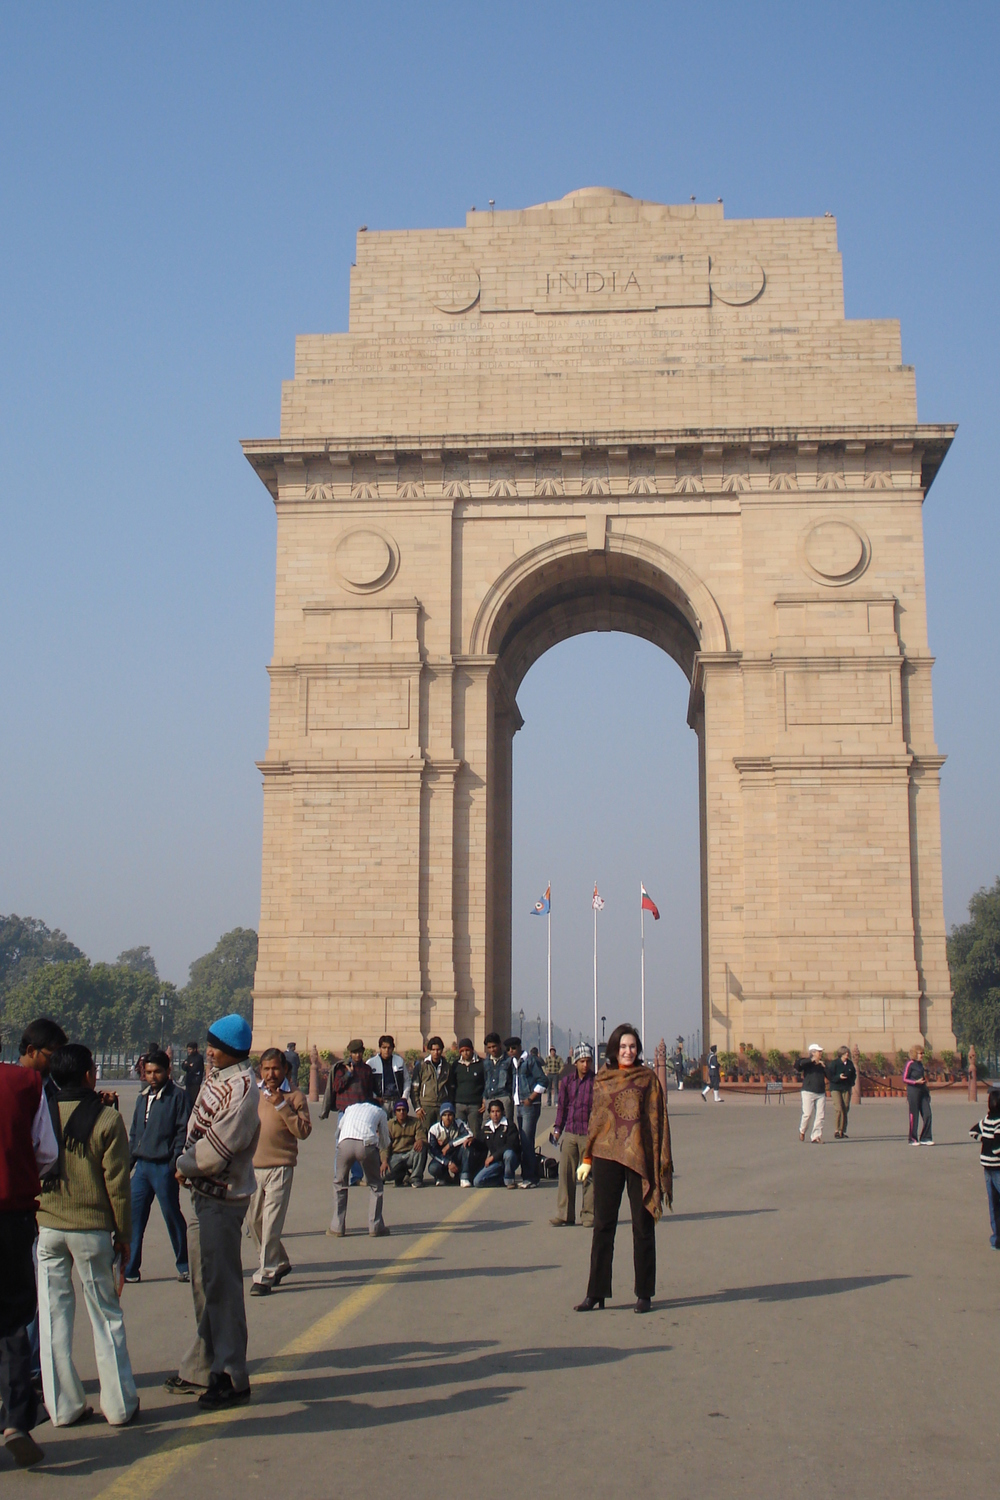 Anna near India Gate, Delhi